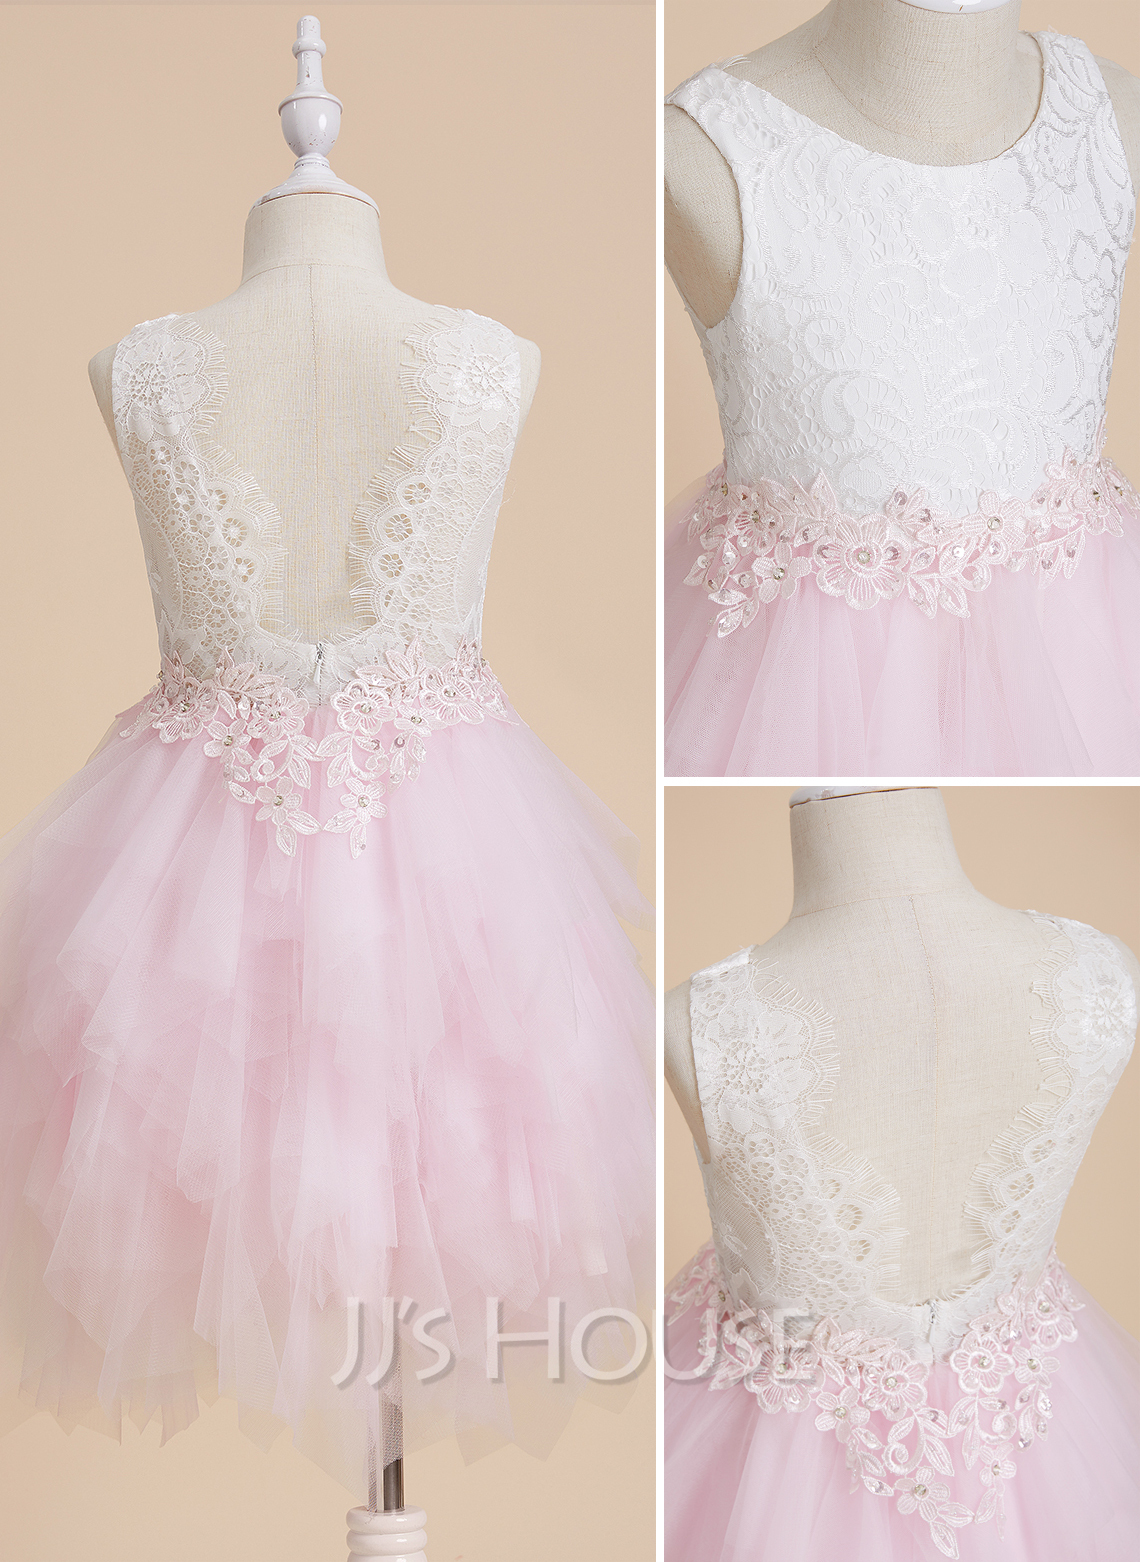 Ball-Gown/Princess Knee-length Flower Girl Dress - Tulle Lace Sleeveless Scoop Neck With Lace Beading Sequins V Back